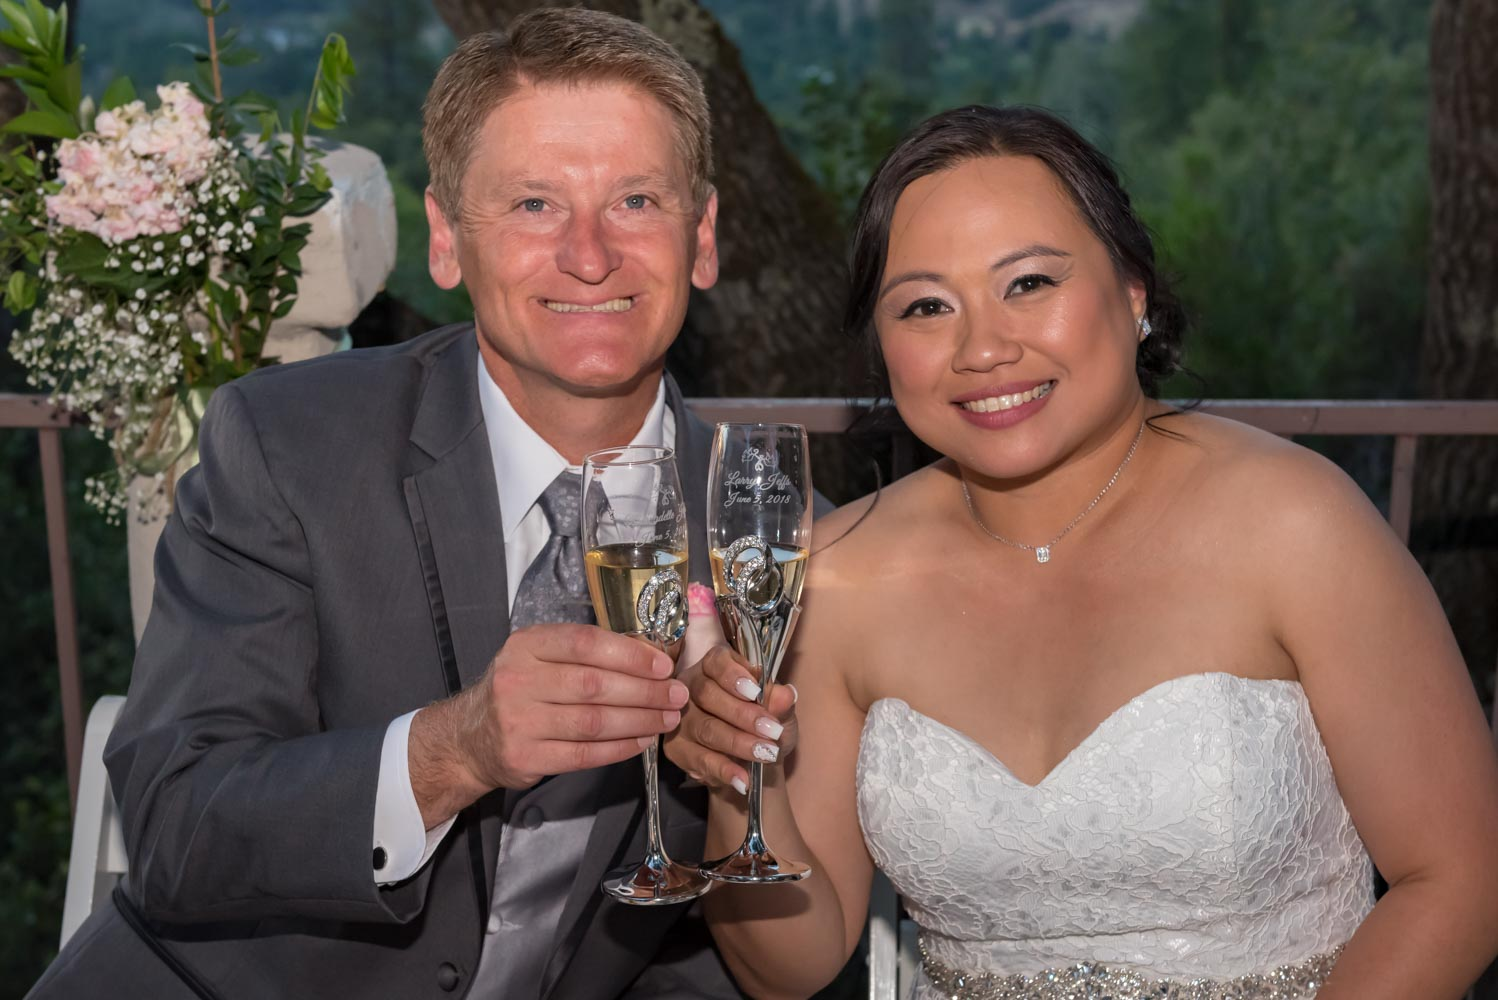 Portrait of bride and groom smiling and holding toasting glasses